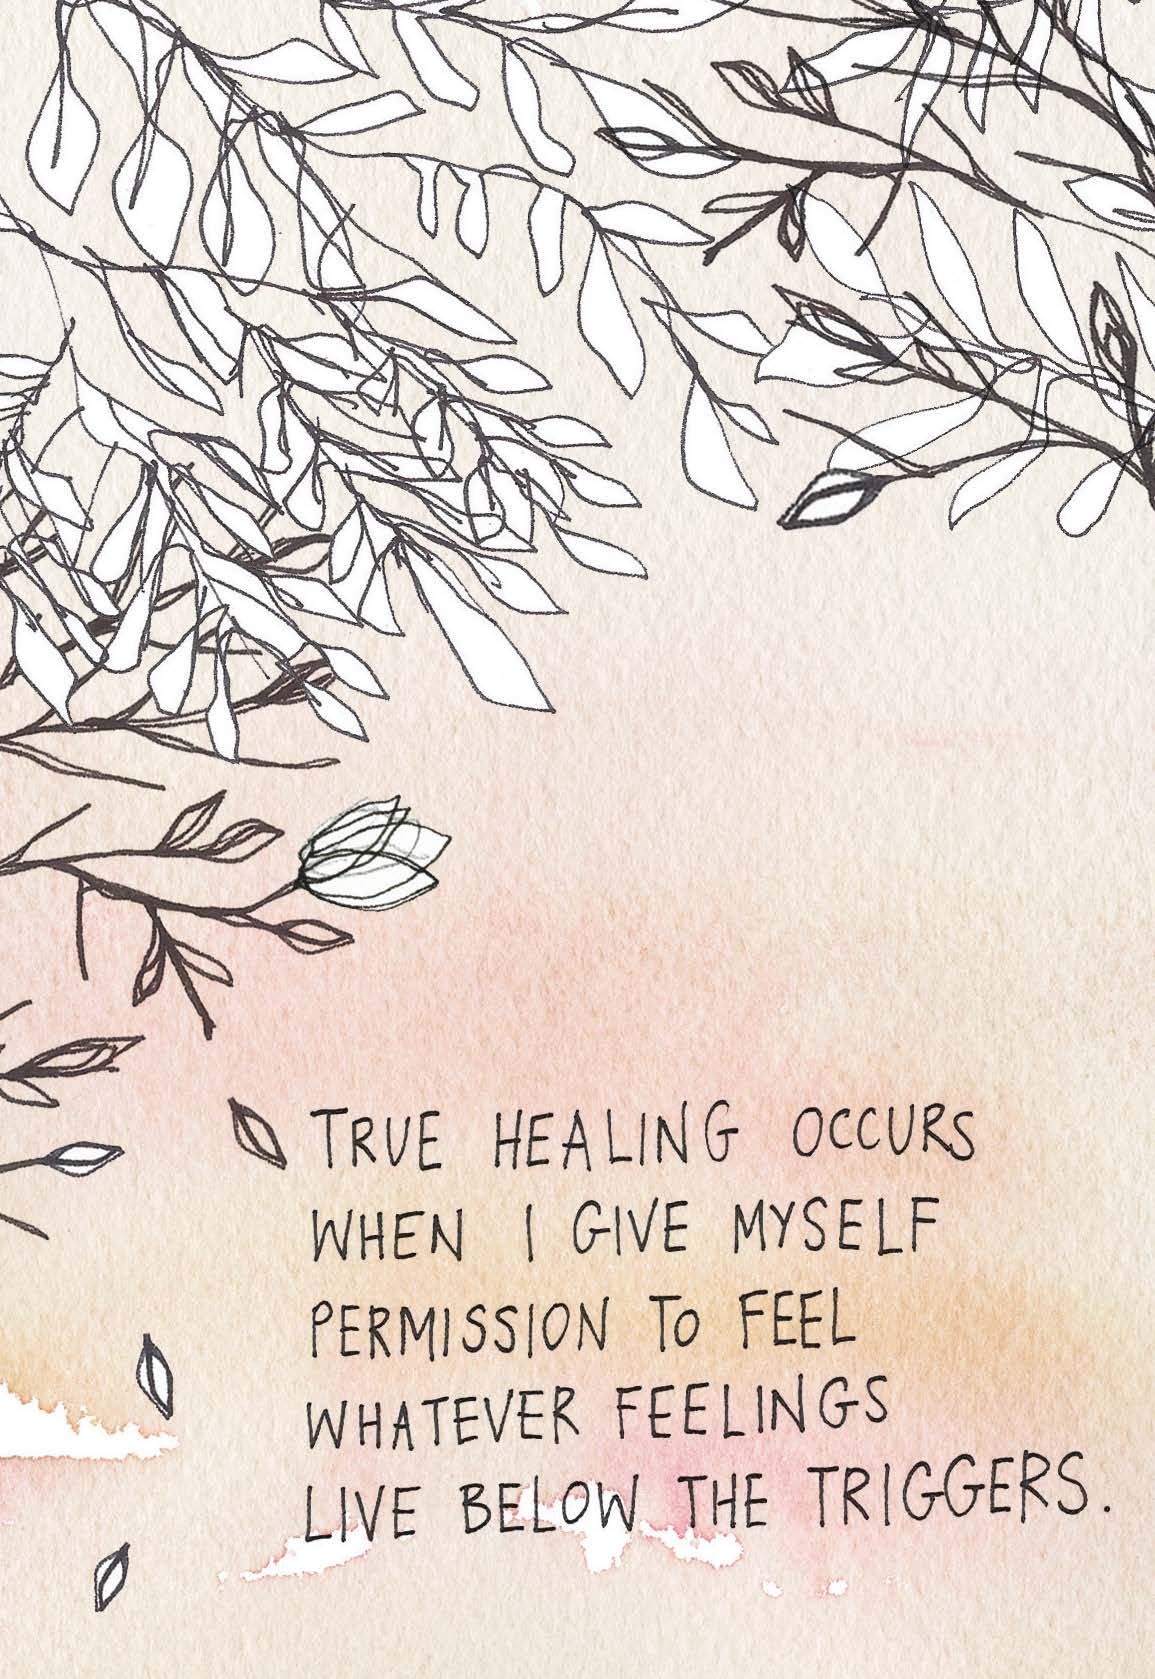 True healing occurs when I give myself permission to feel my feelings